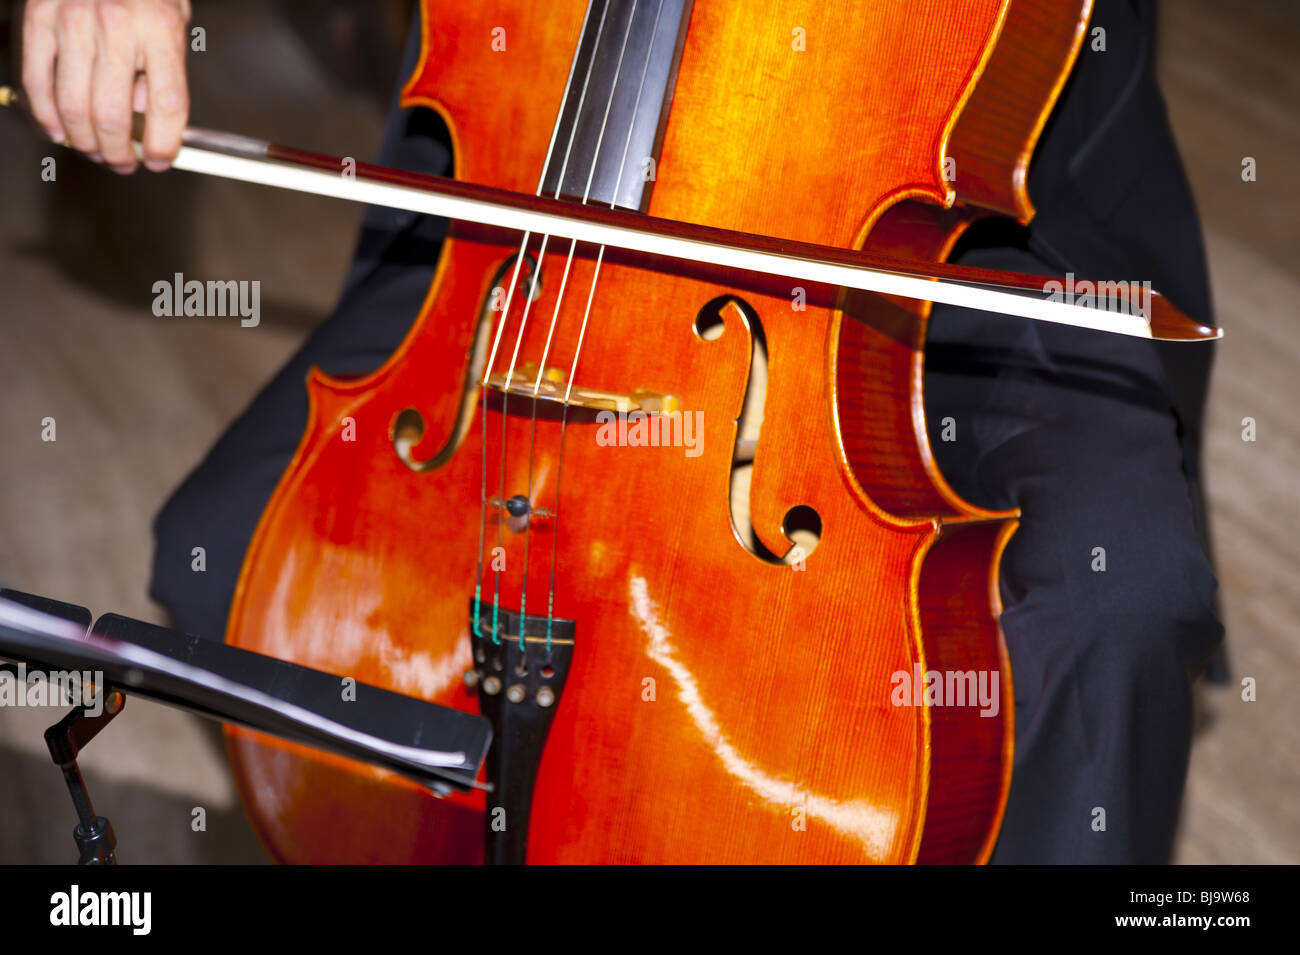 A cello being played - Stock Image